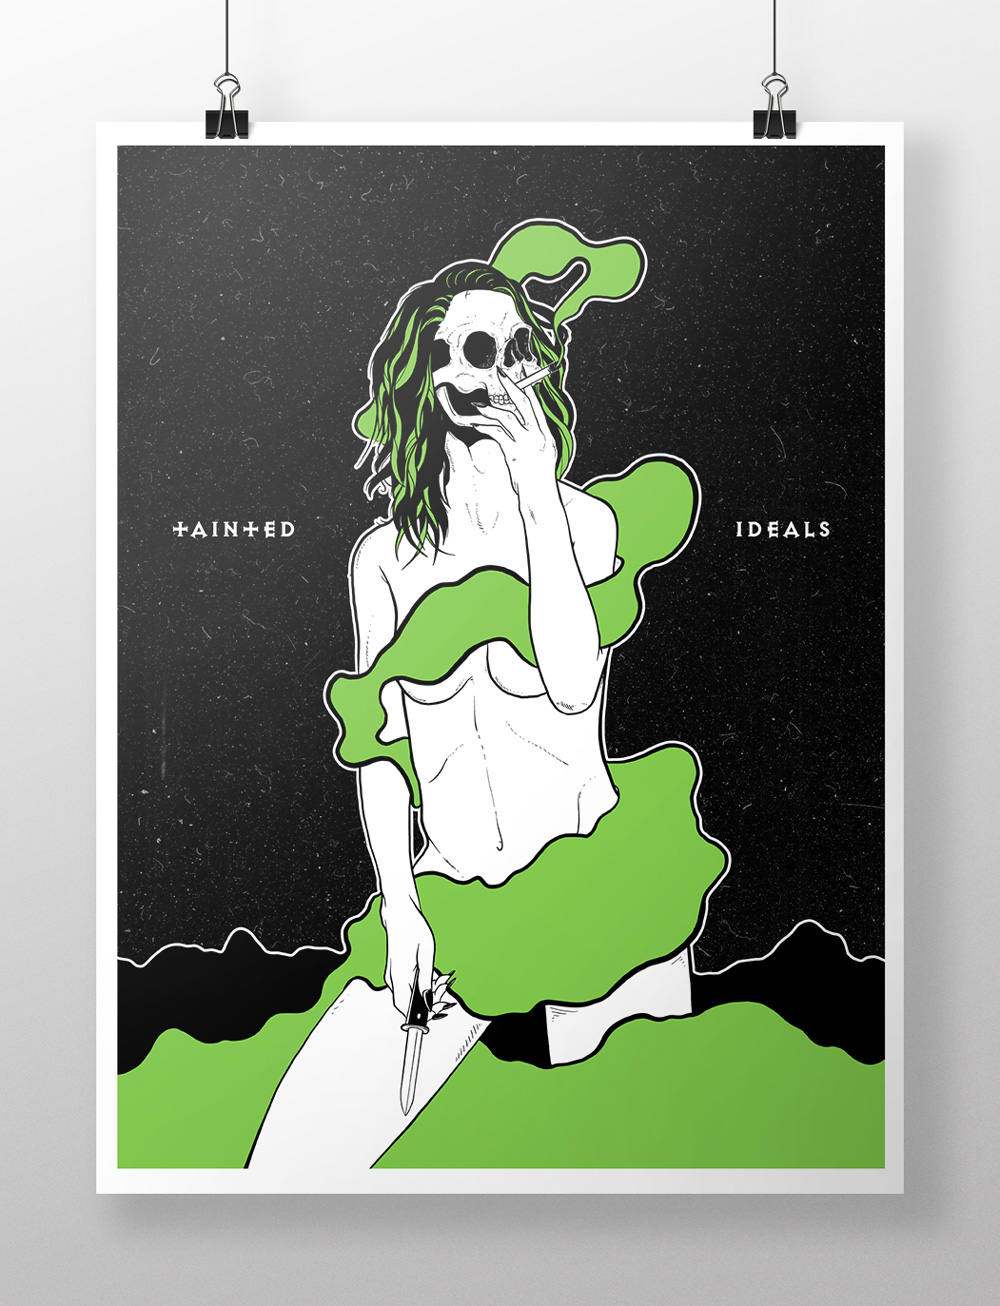 Tainted Ideals 8x10 - $17.99 (Other sizes available)